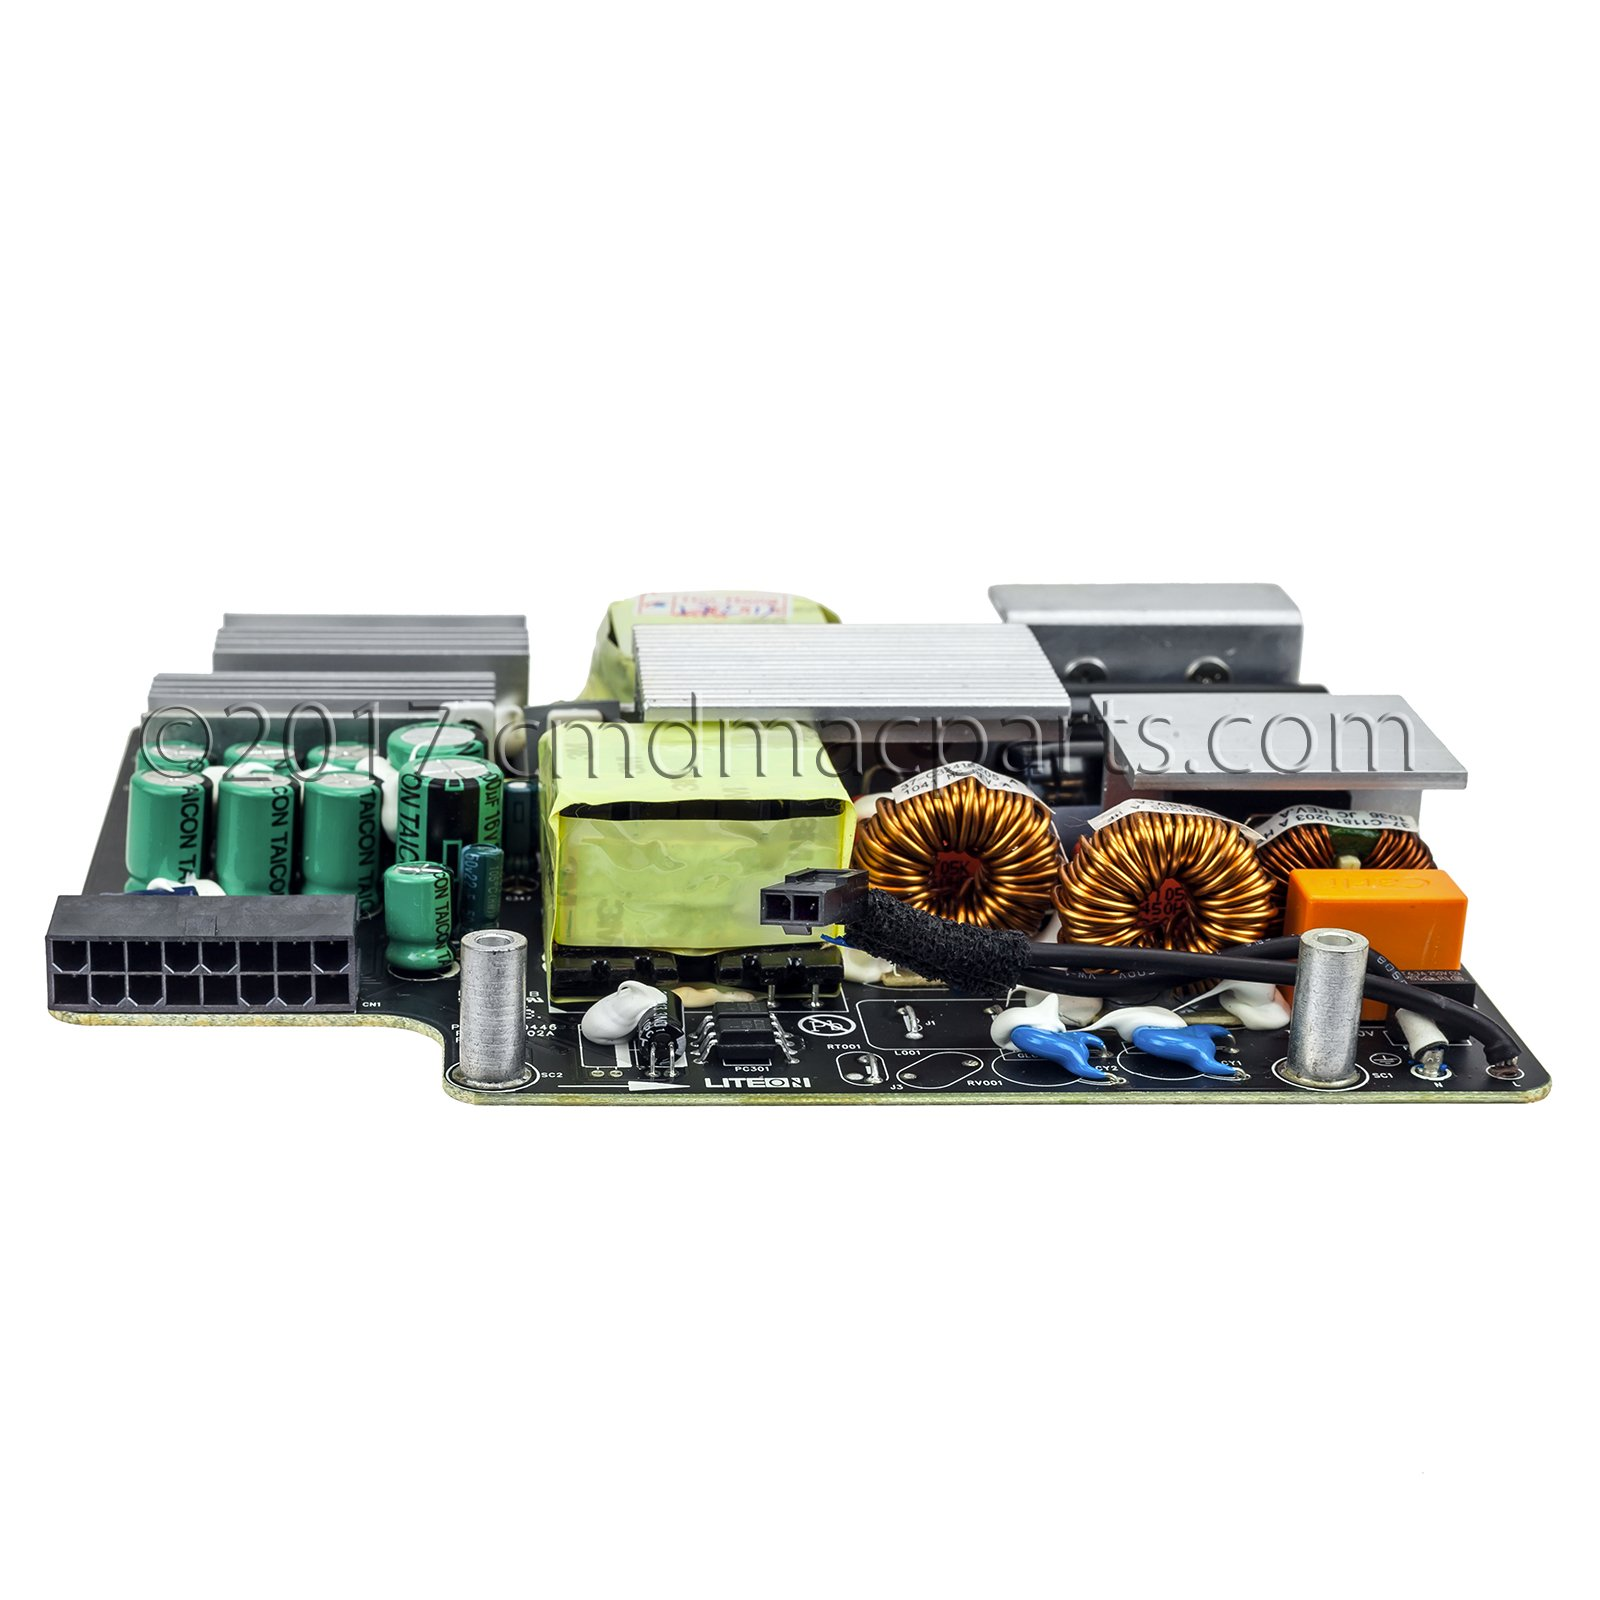 COMMAND MAC PARTS - Power Supply 310W - For Apple iMac 27'' A1312 (Late 2009 - Mid 2011) by Command Mac Parts (Image #3)